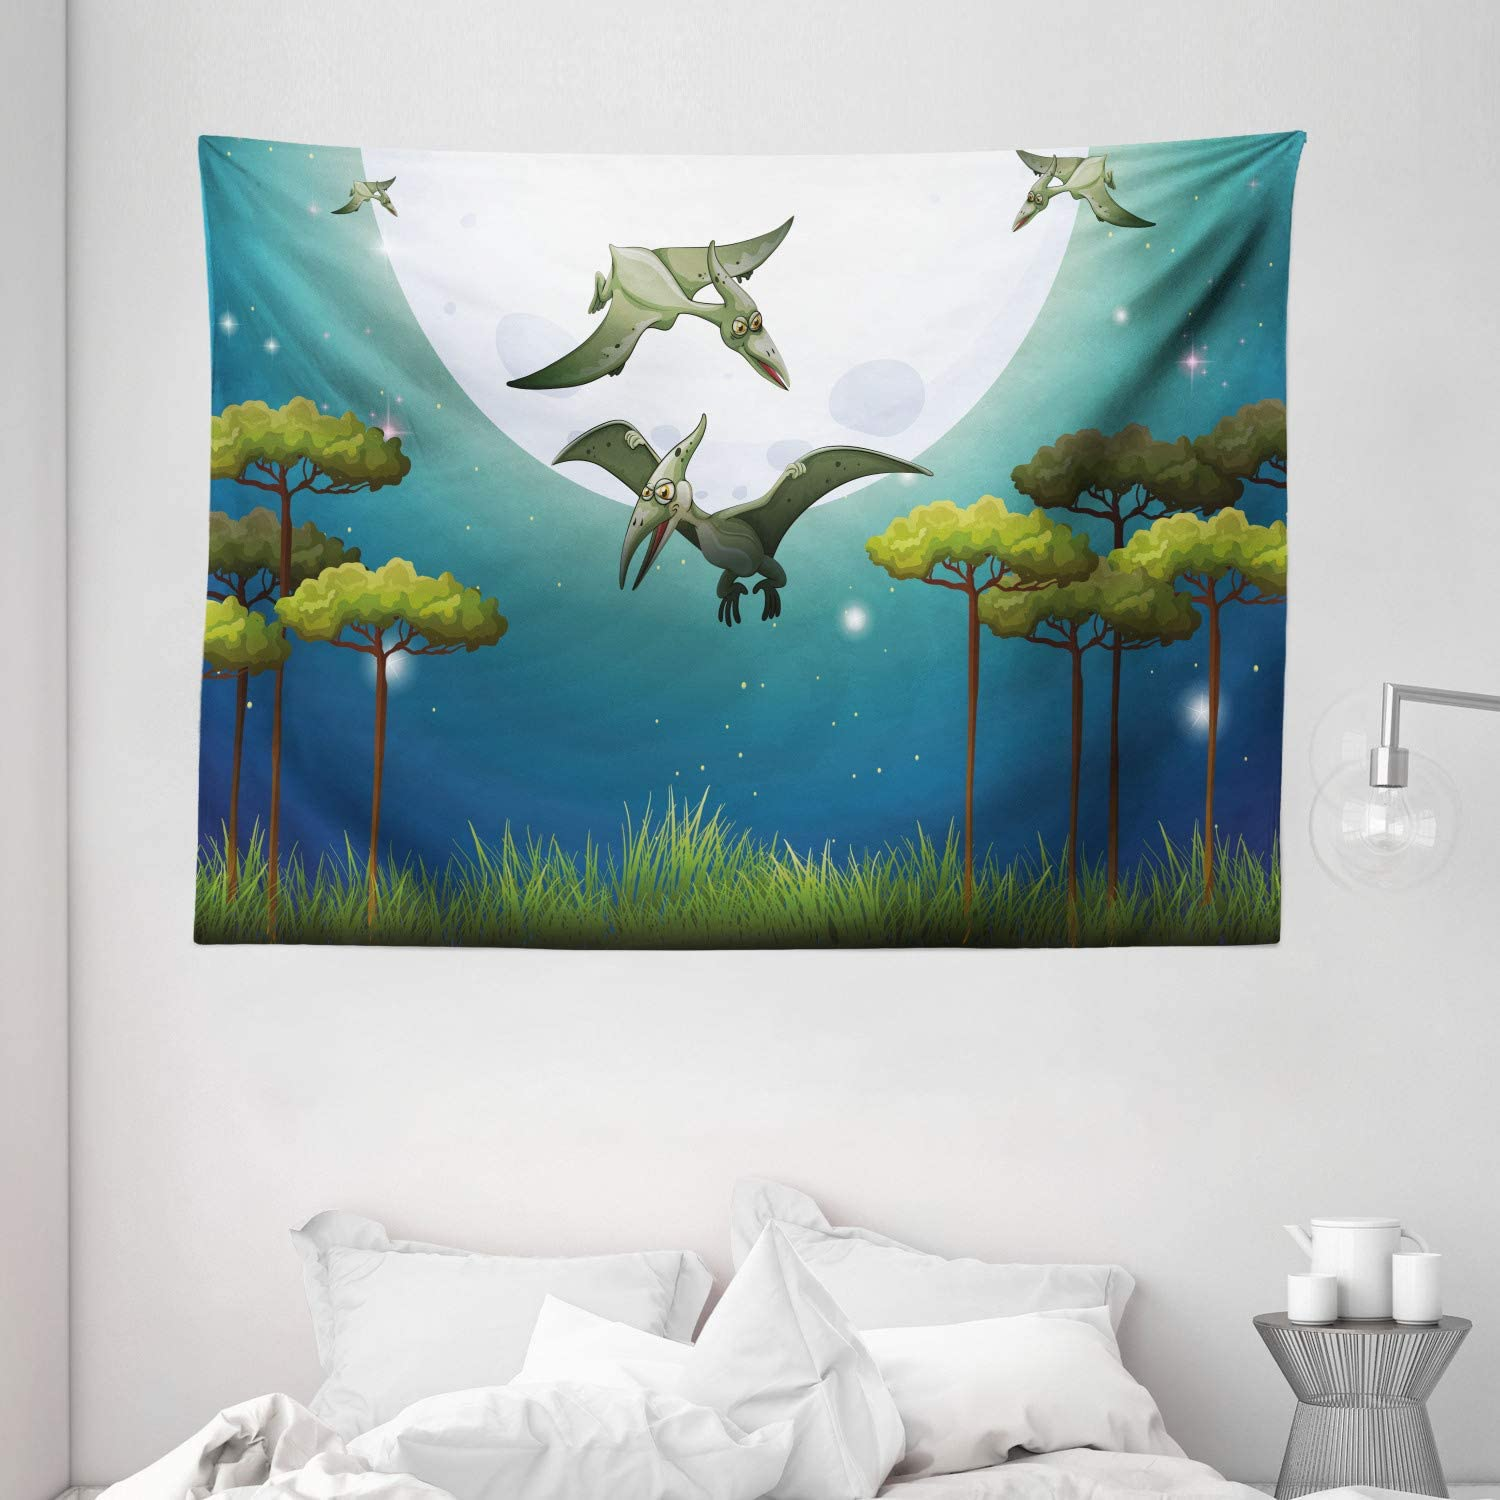 Amazon Com Ambesonne Dinosaur Tapestry Cartoon Style Dinosaurs Flying On Full Moon Magical Night Enchanted Forest Wall Hanging For Bedroom Living Room Dorm 80 X 60 Green White Blue Home Kitchen